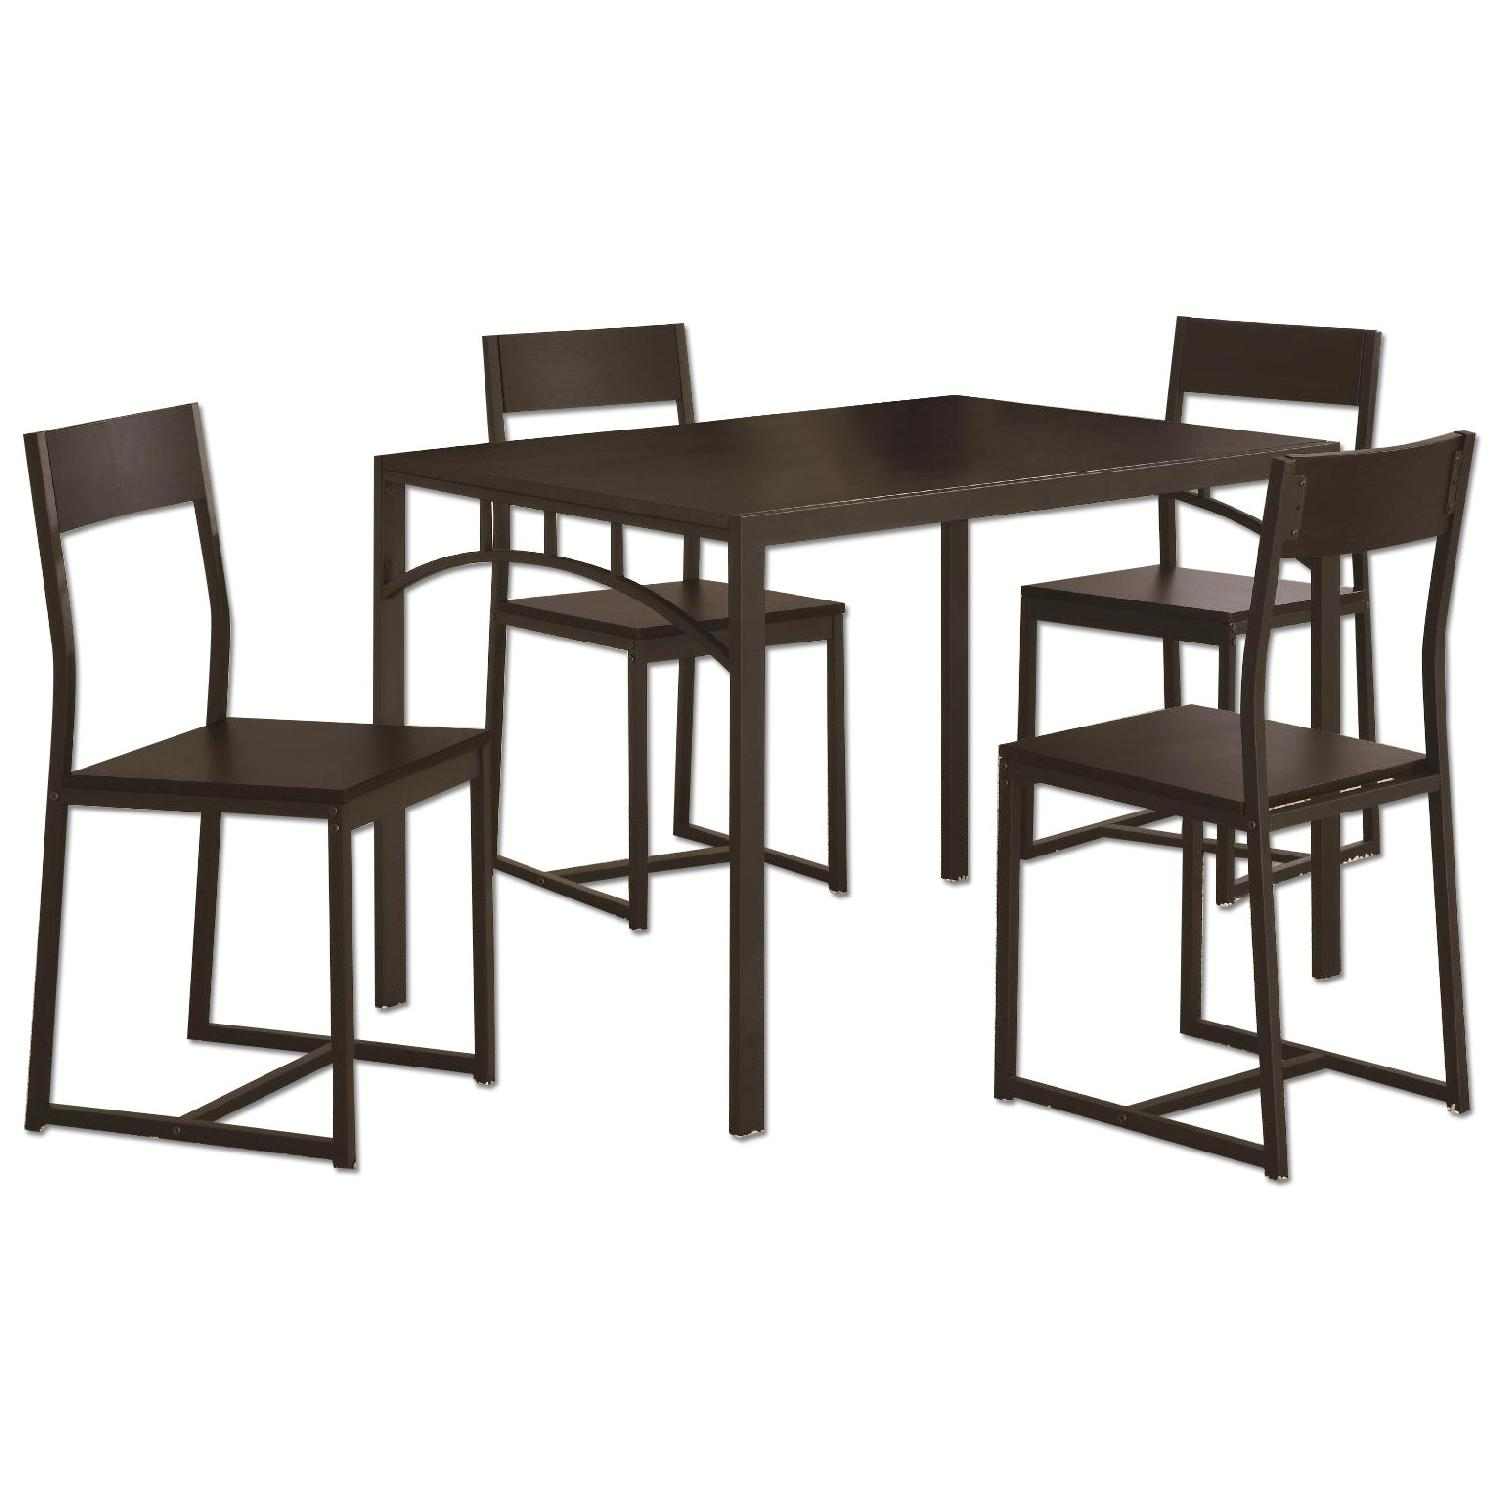 5-Piece Simple Chic Dining Set w/ Metal Frame & Wood Top - image-0